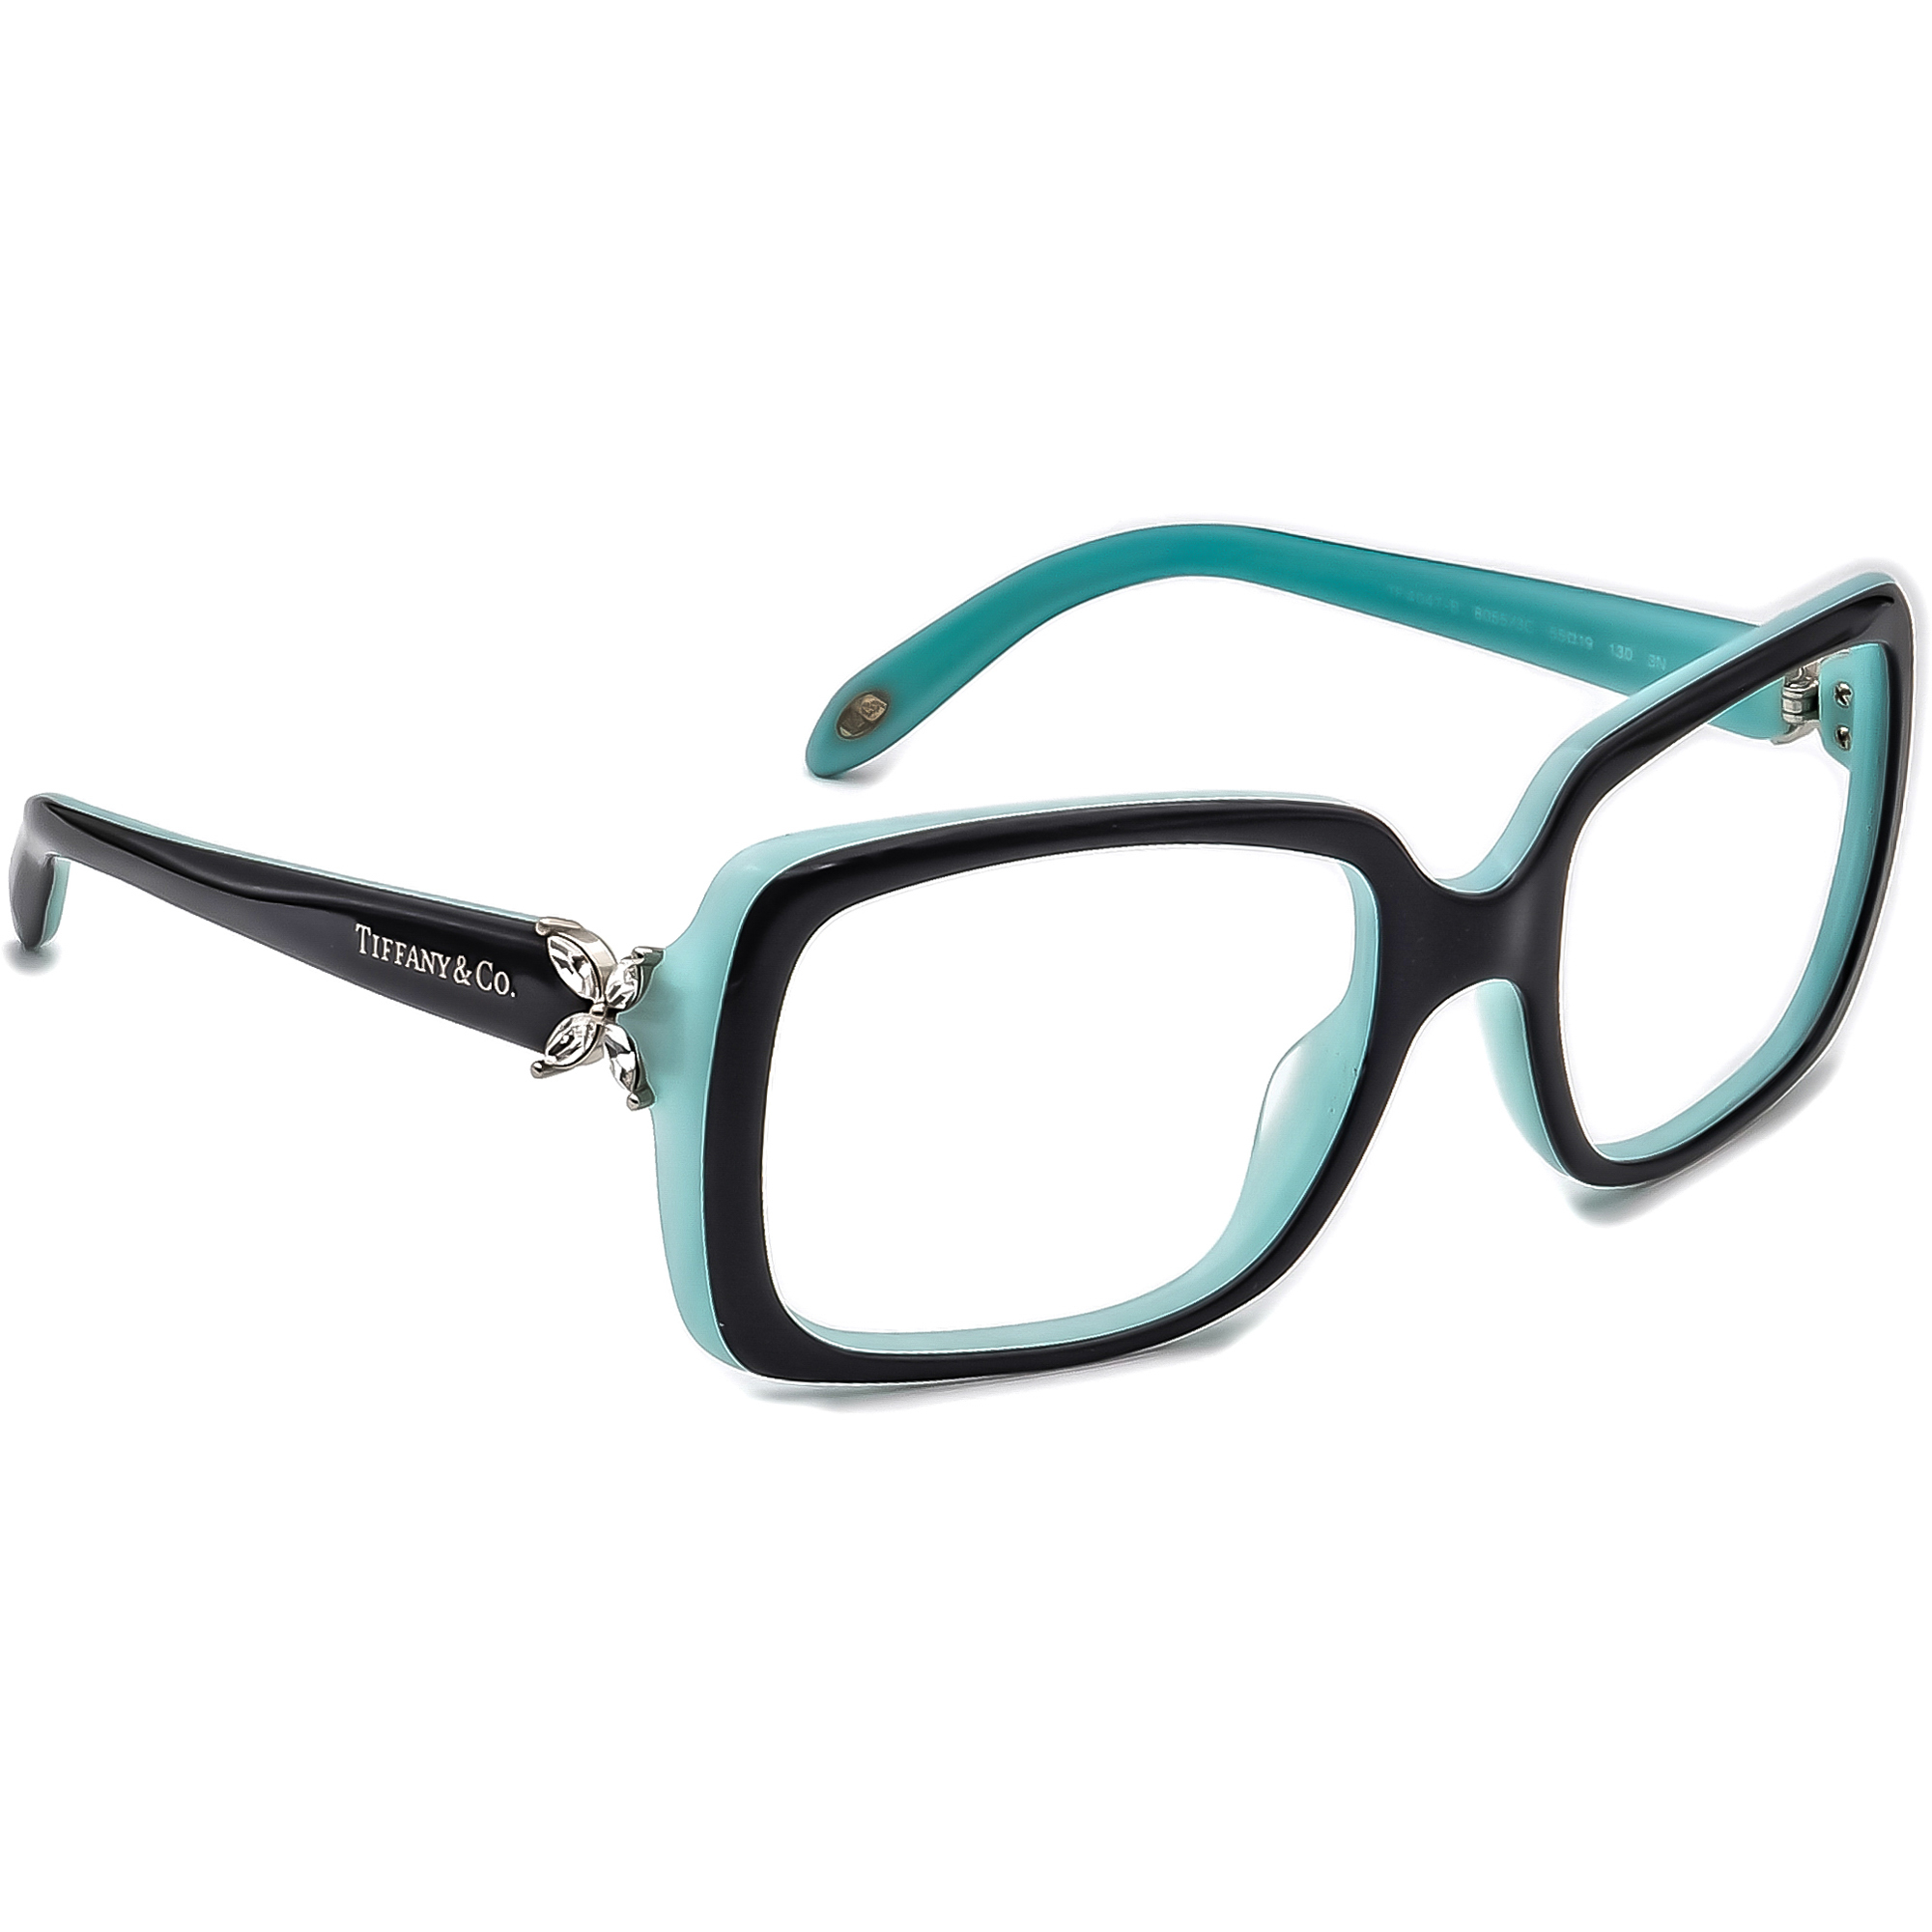 Tiffany & Co. TF 4047-B 8055/3C  Sunglasses Frame Only